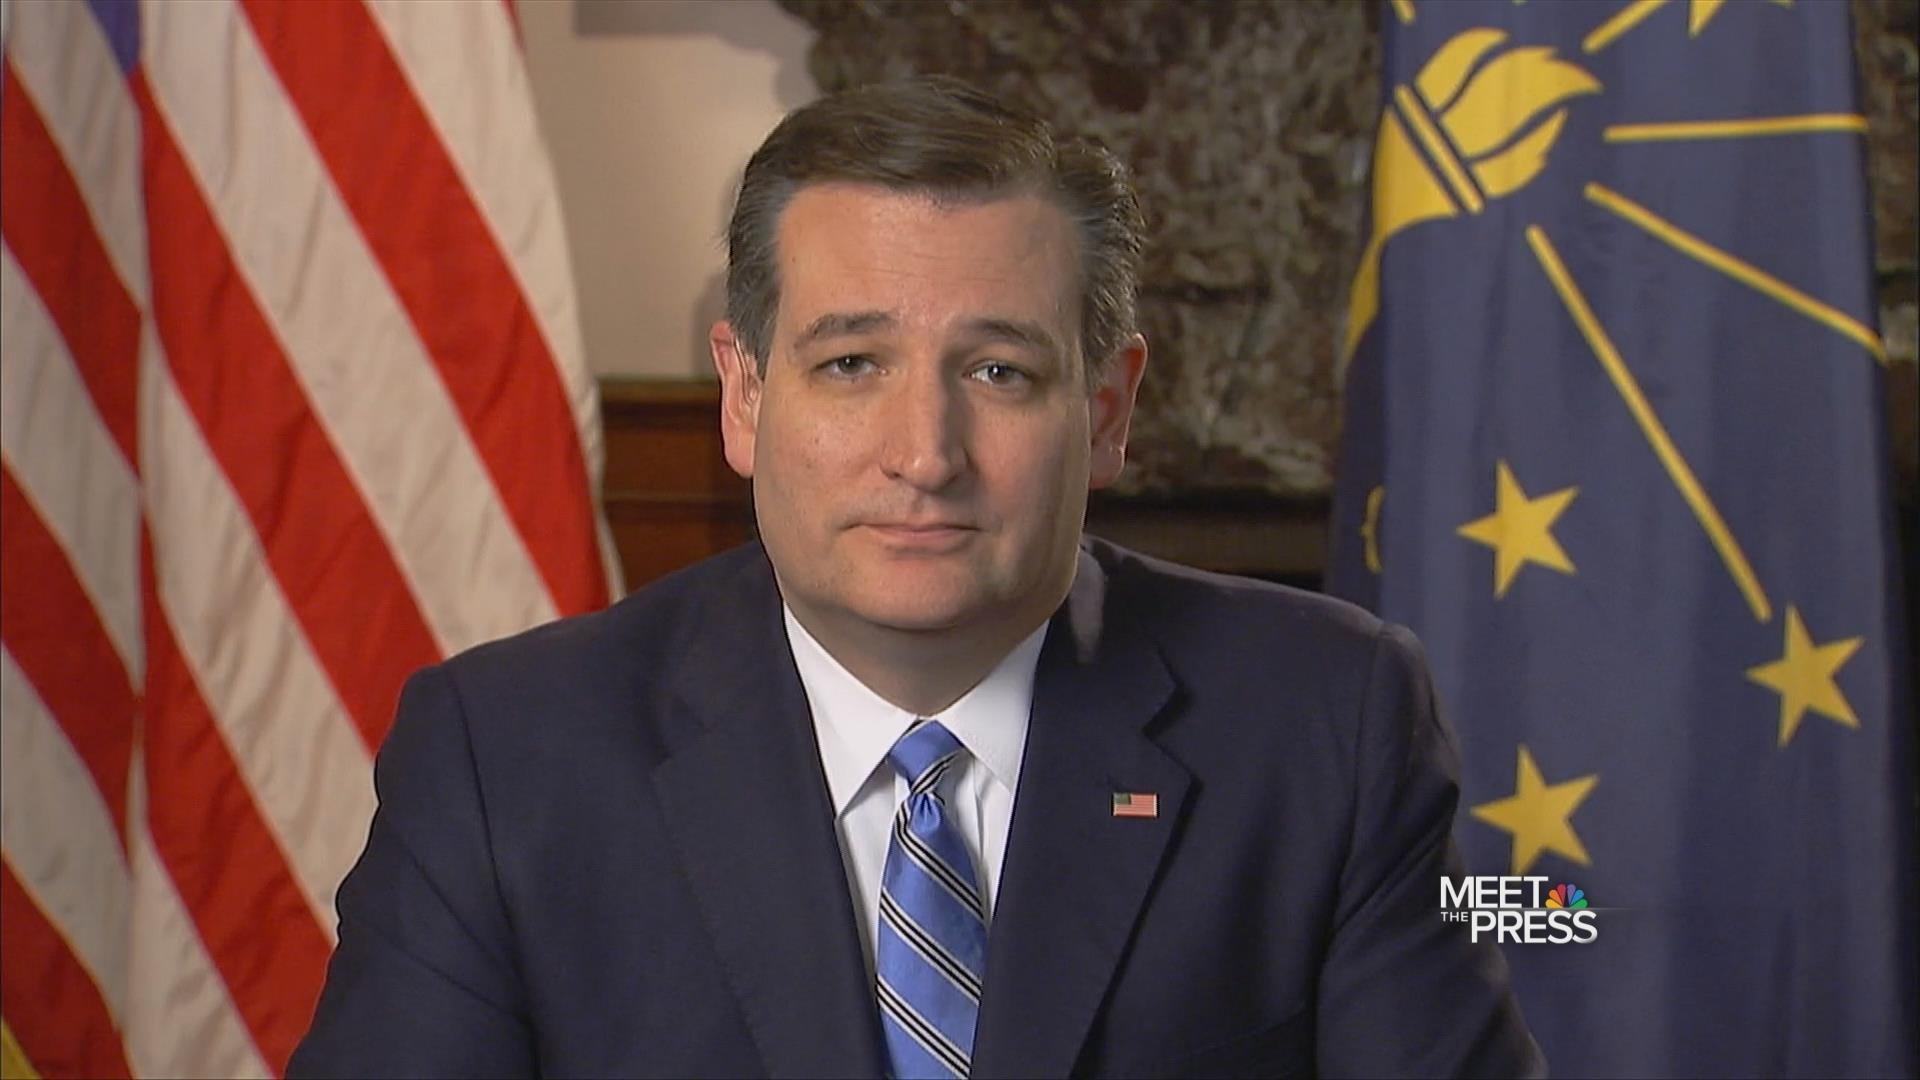 Ted Cruz: 'Indiana Has a Chance to Choose'